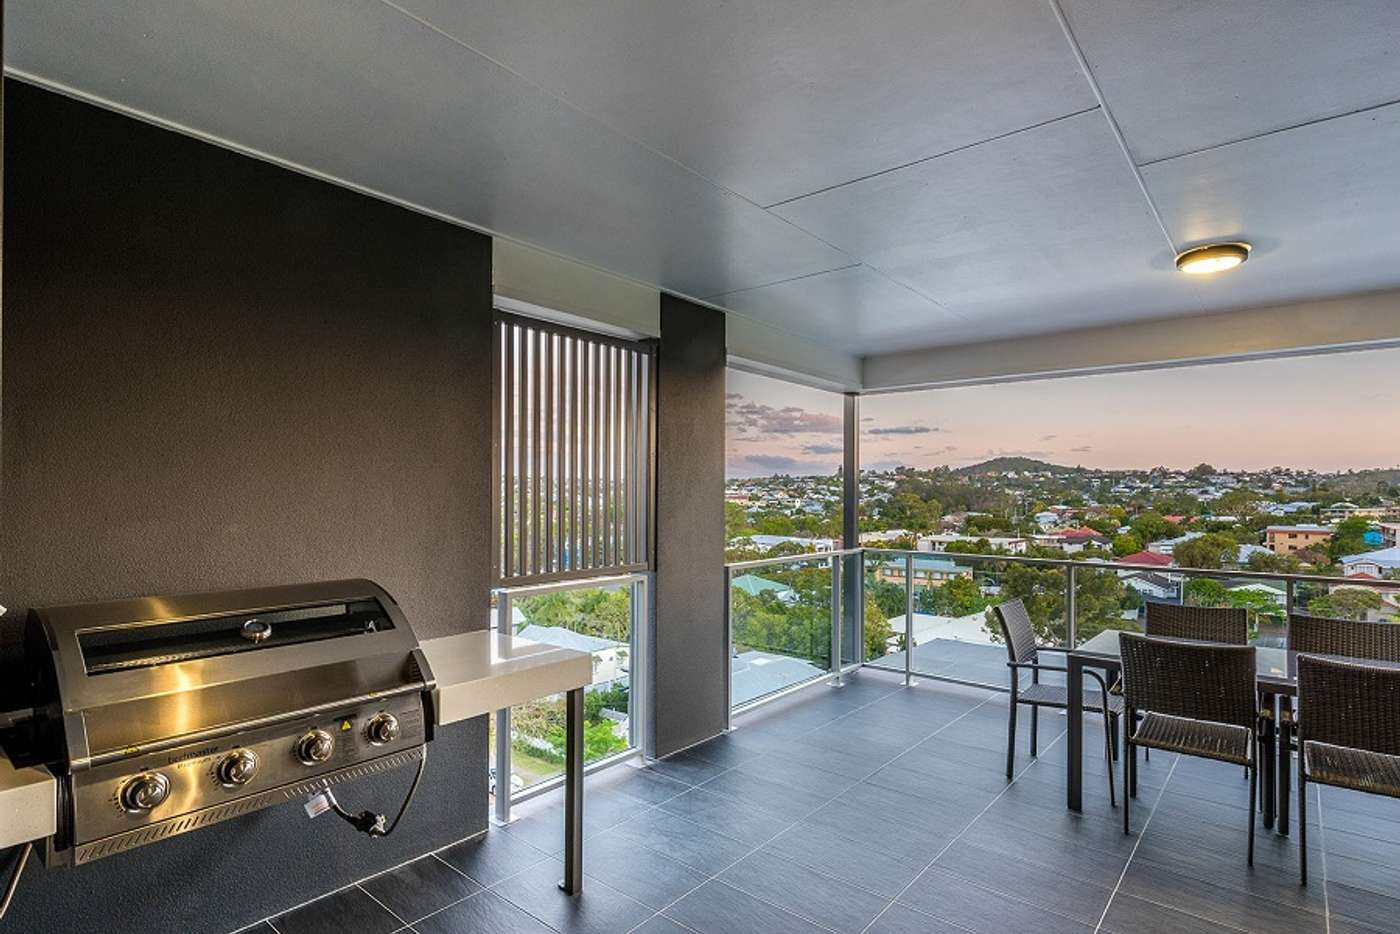 Sixth view of Homely apartment listing, 19 Talbot Street, Coorparoo QLD 4151